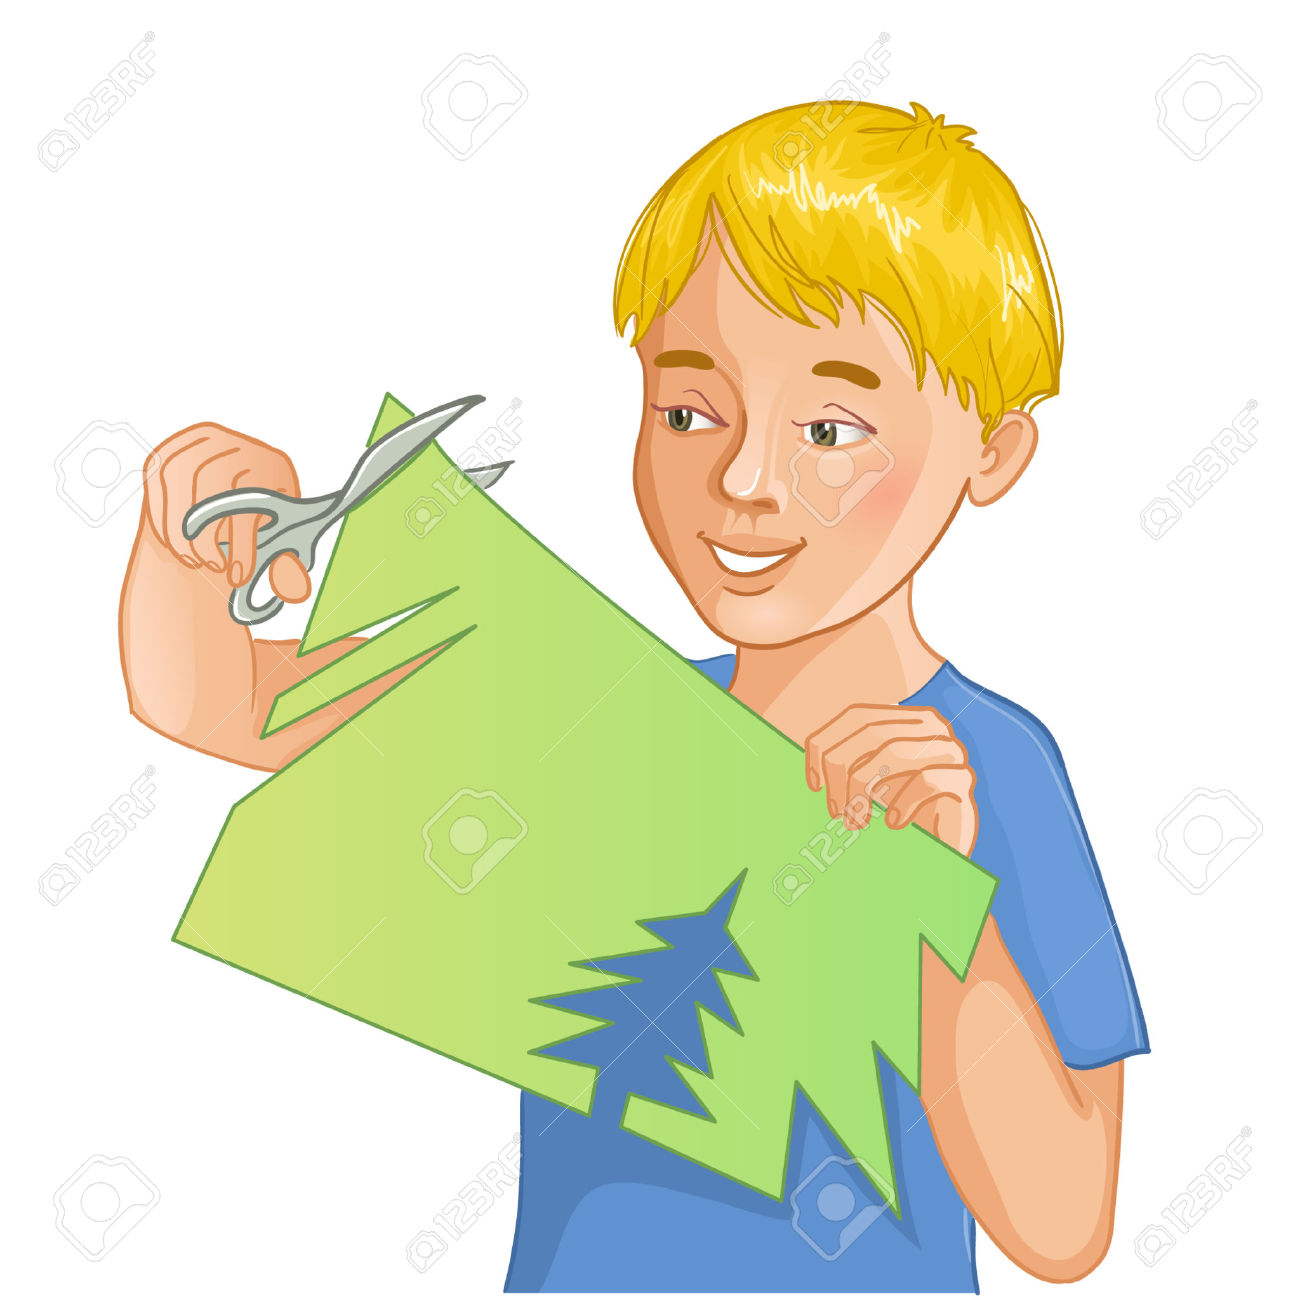 Boy With Scissors Clipart.